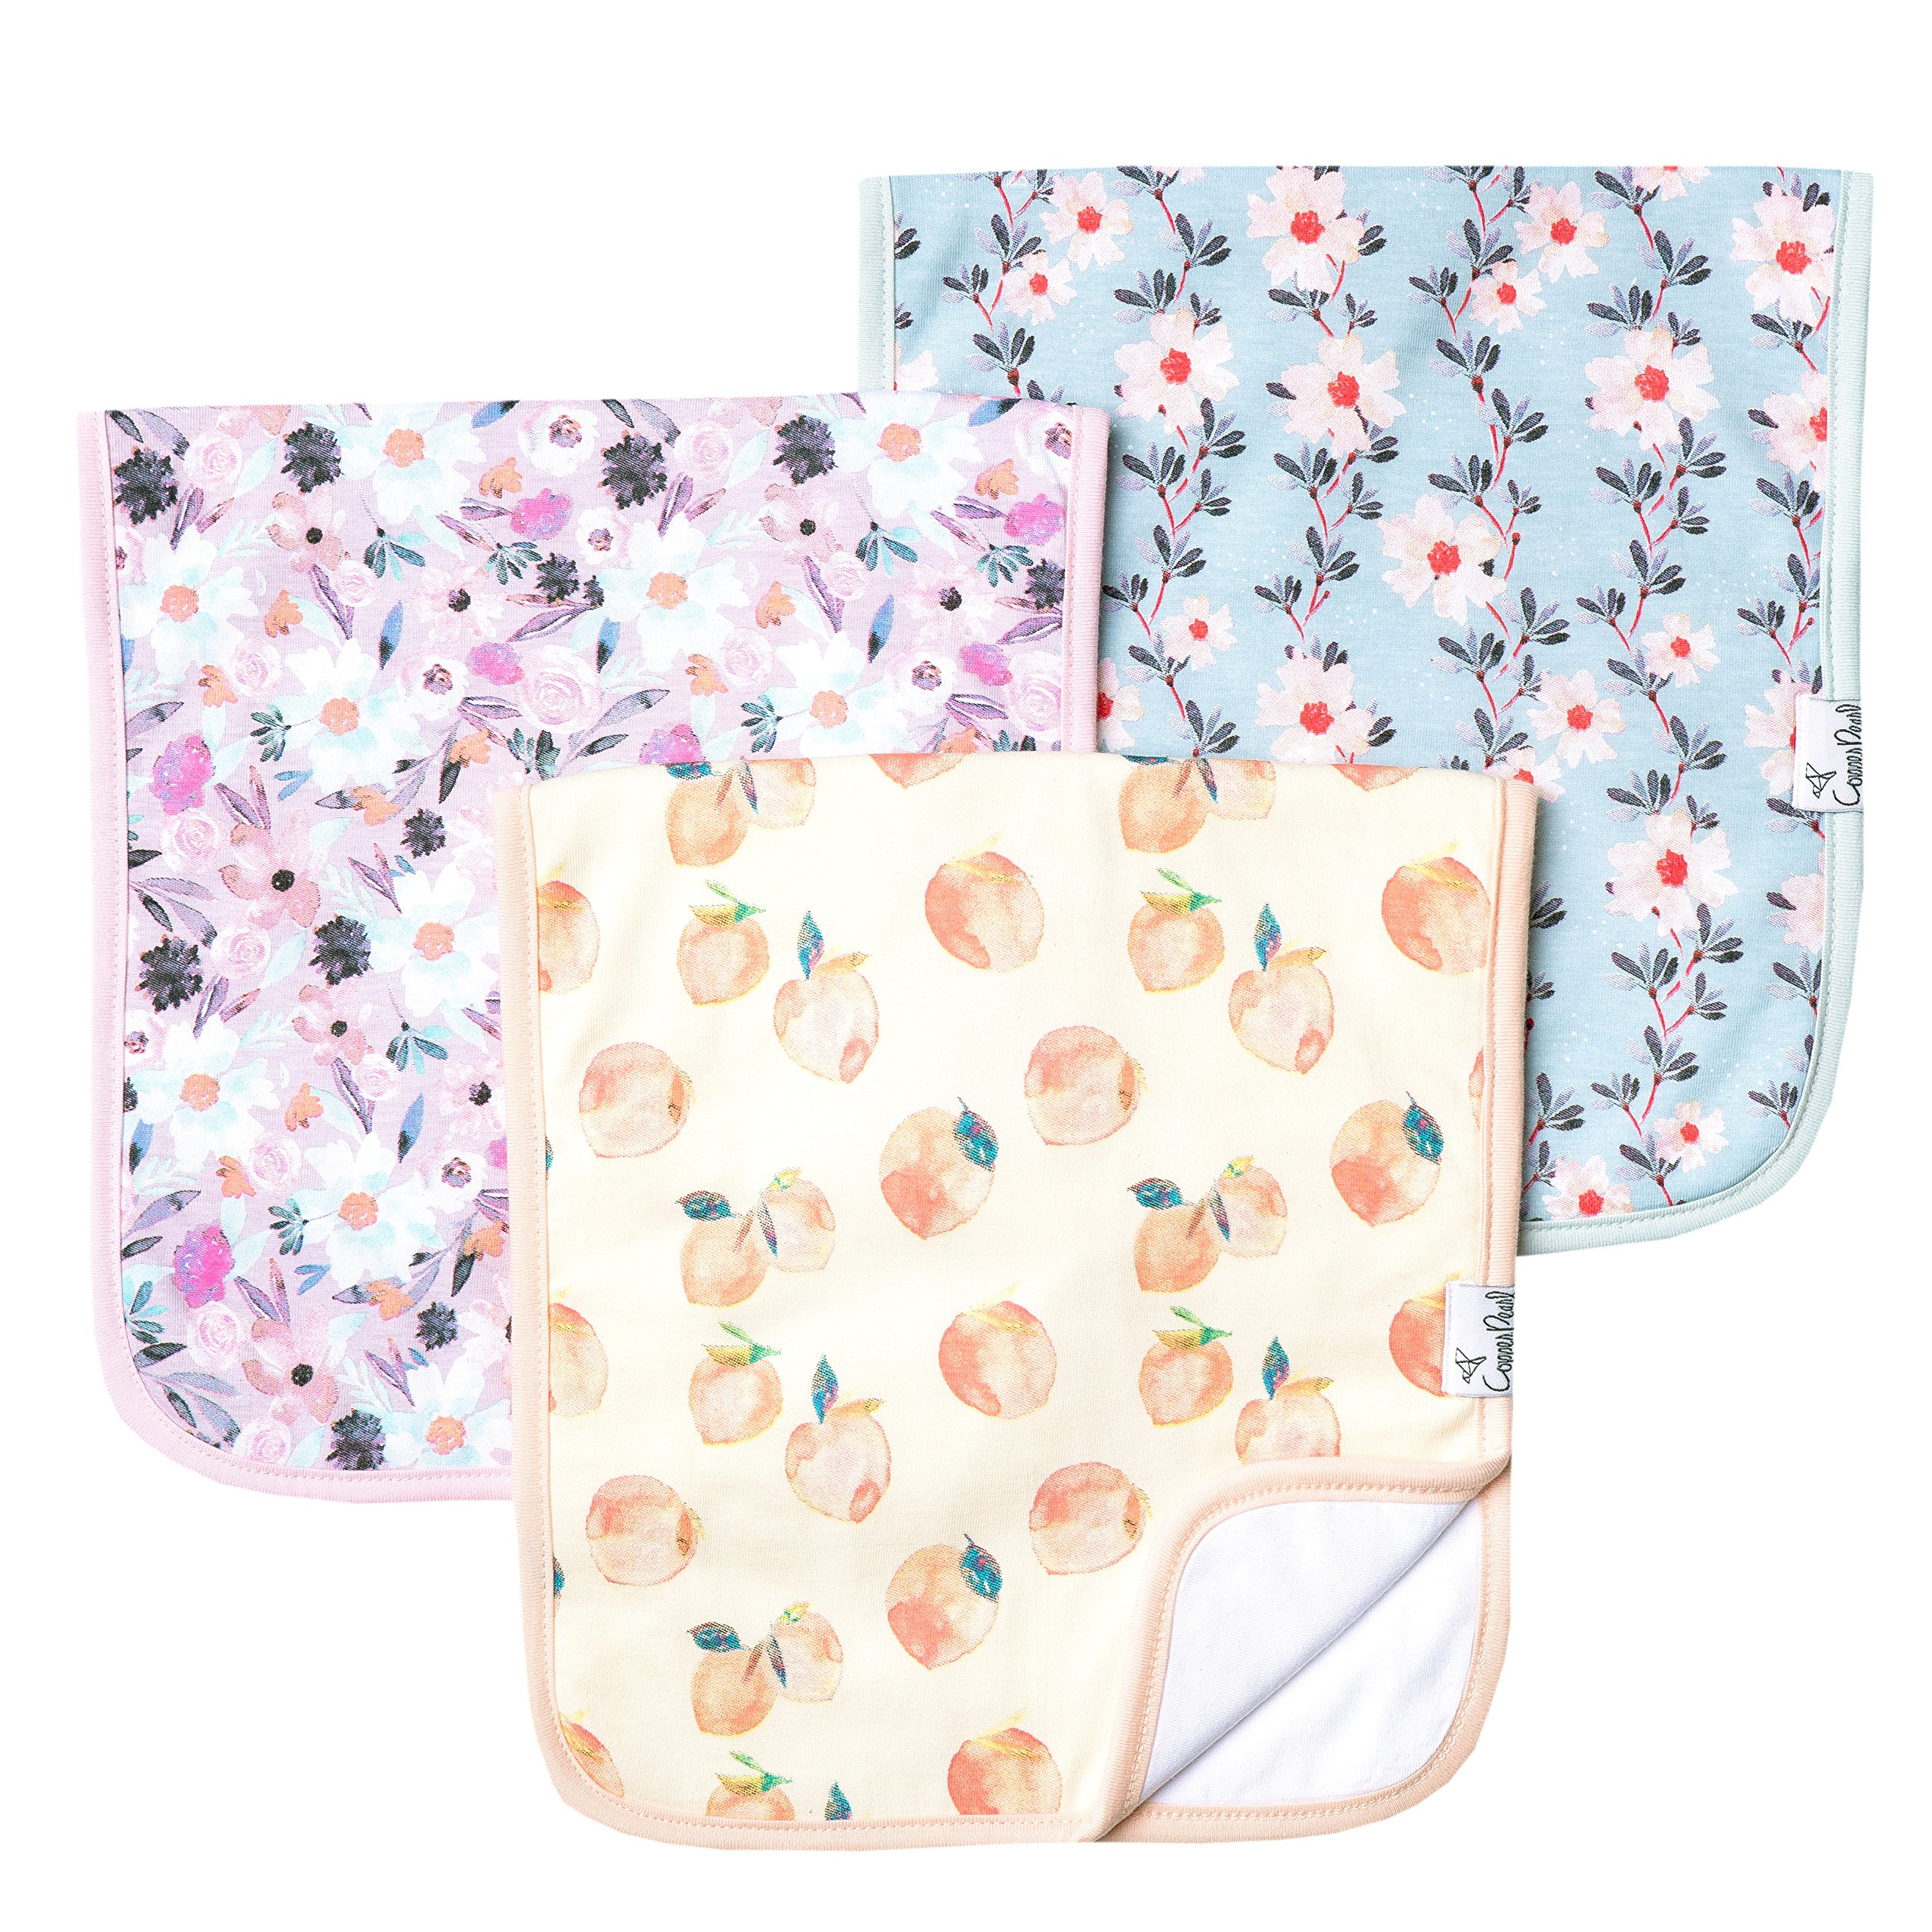 Baby Burp Cloth Large 21''x10'' Size Premium Absorbent Triple Layer 3-Pack Gift Set ''Morgan'' by Copper Pearl ... by Copper Pearl